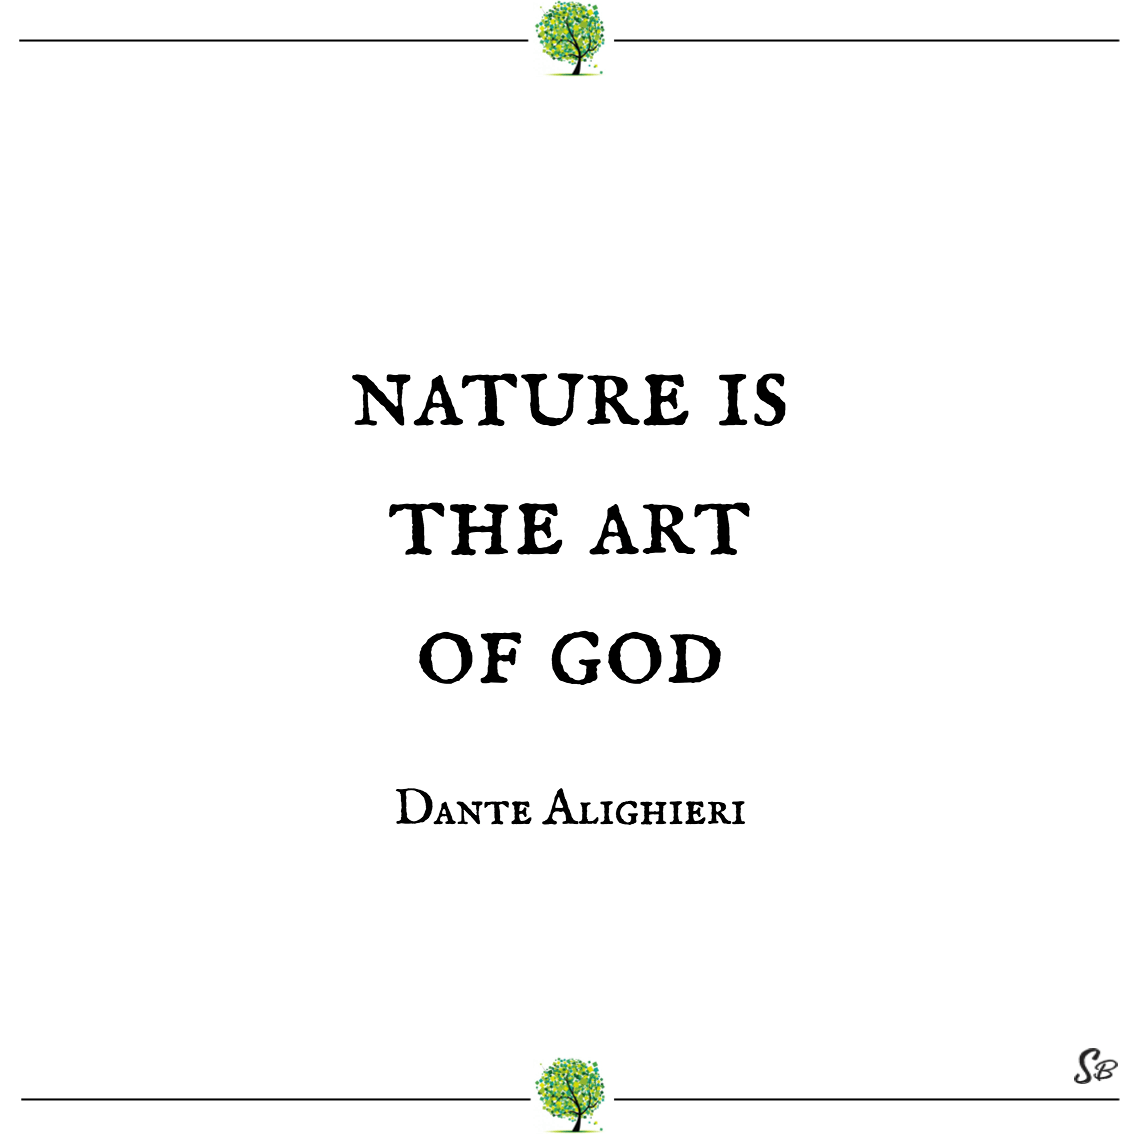 Nature is the art of god dante alighieri nature quotes